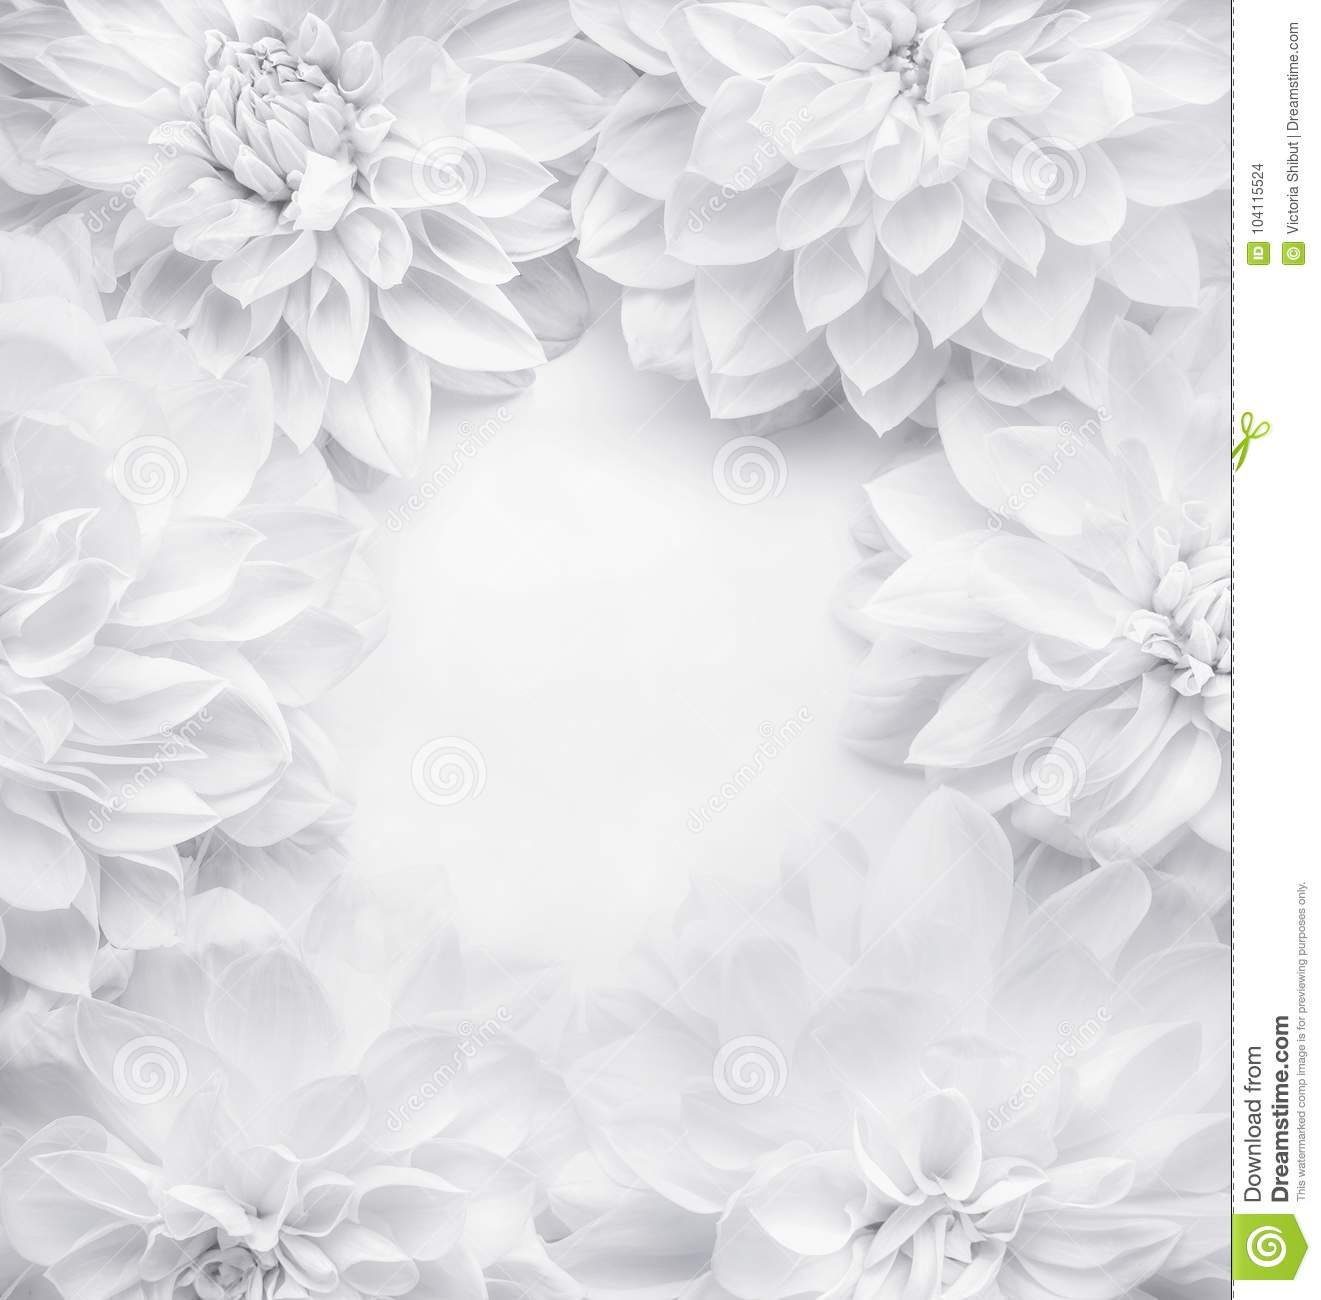 Creative white flowers frame background , floral pattern or layout for greeting card of Mothers day,birthday